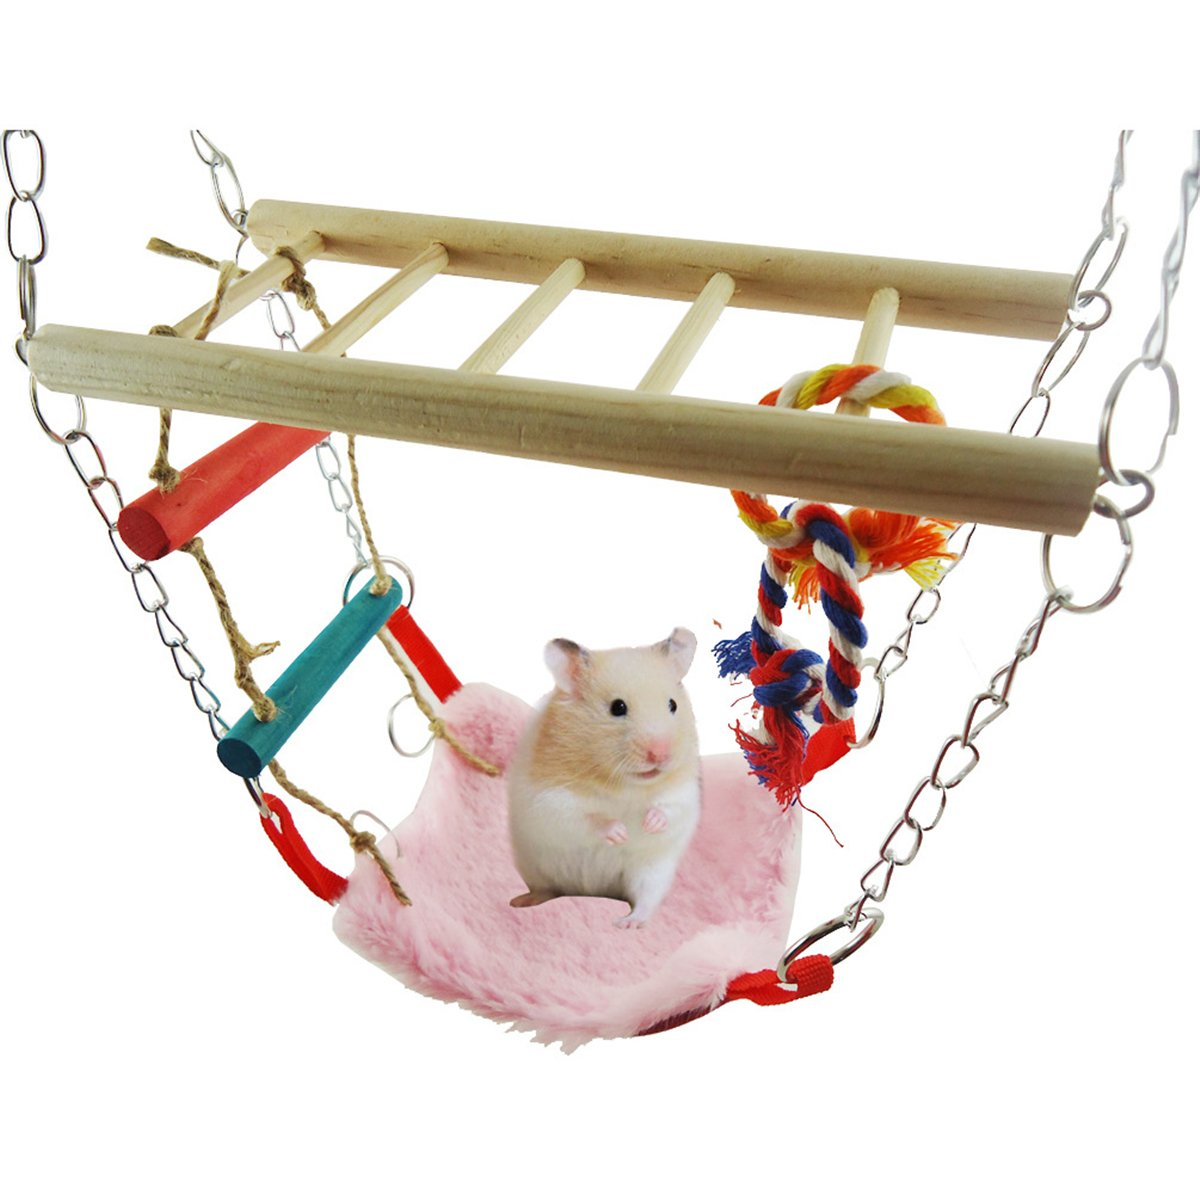 SHIHAOFW Rats Hamster Winter Warm Fleece Hanging Cage Hammock Cute Bed Mat for Small Furry Animals Bird Toy for Parrot,Swings,Ladders for Pet Trainning